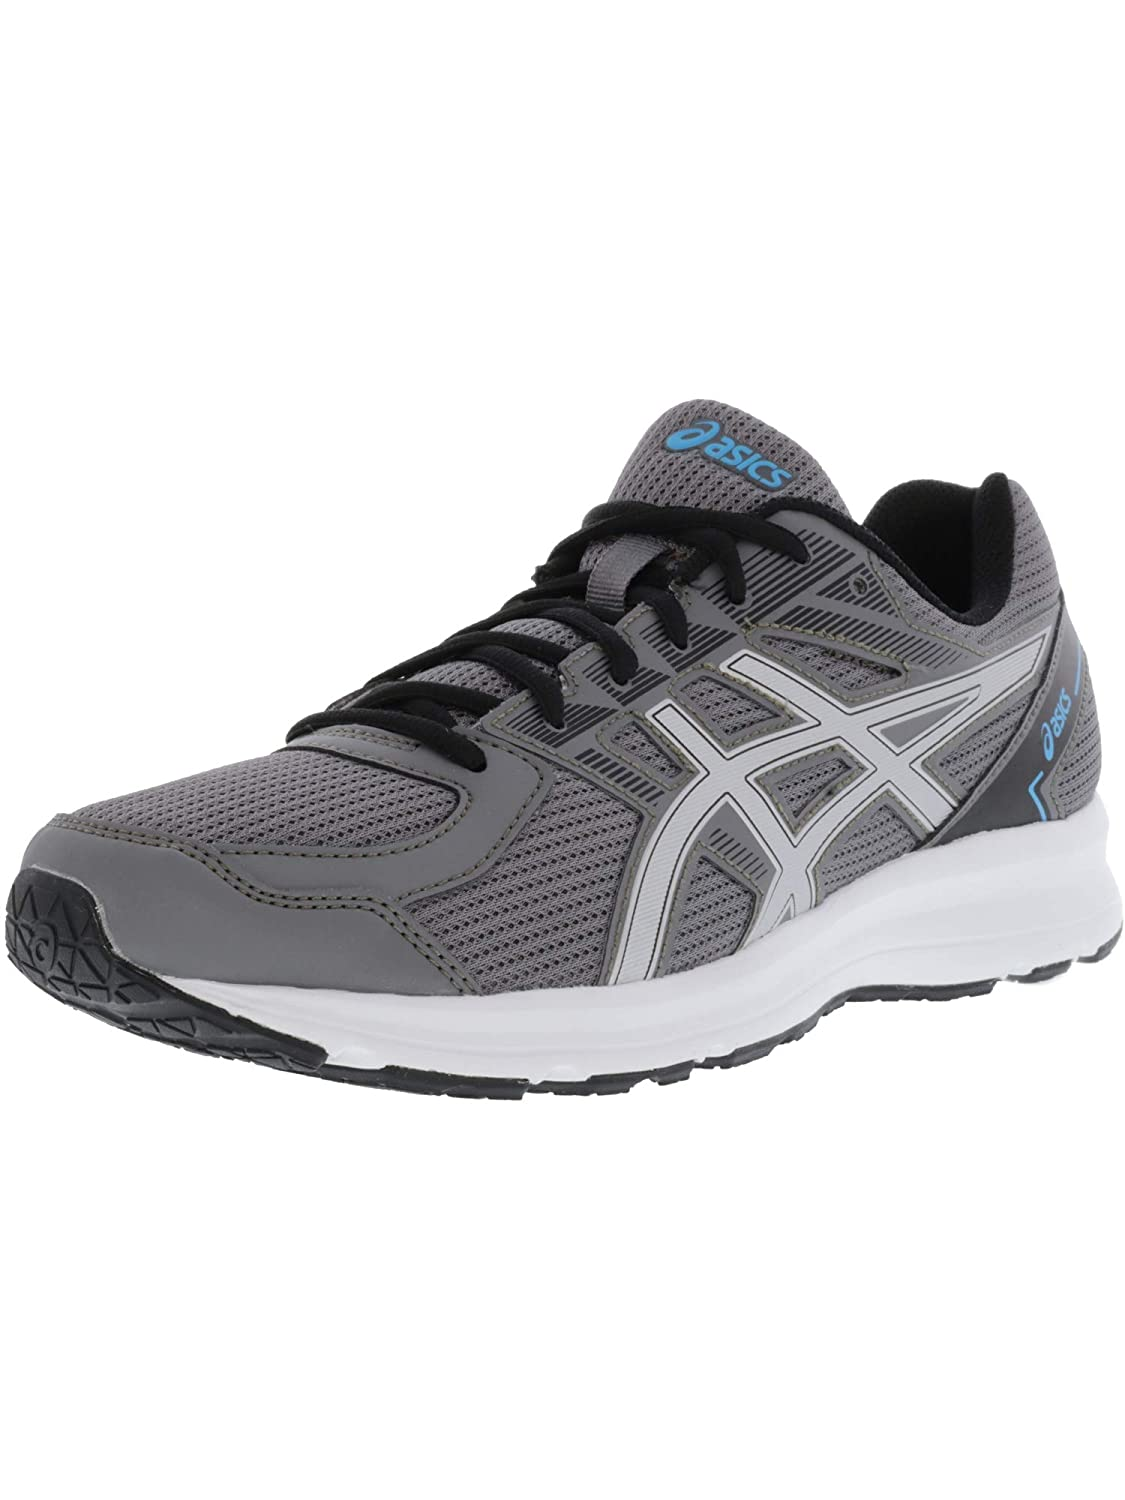 Asics Mens jolt Low Top Lace Up Running Sneaker B073HC9FWY 12.5 EEEE US|Carbon/Silver/Island Blue Carbon/Silver/Island Blue 12.5 EEEE US